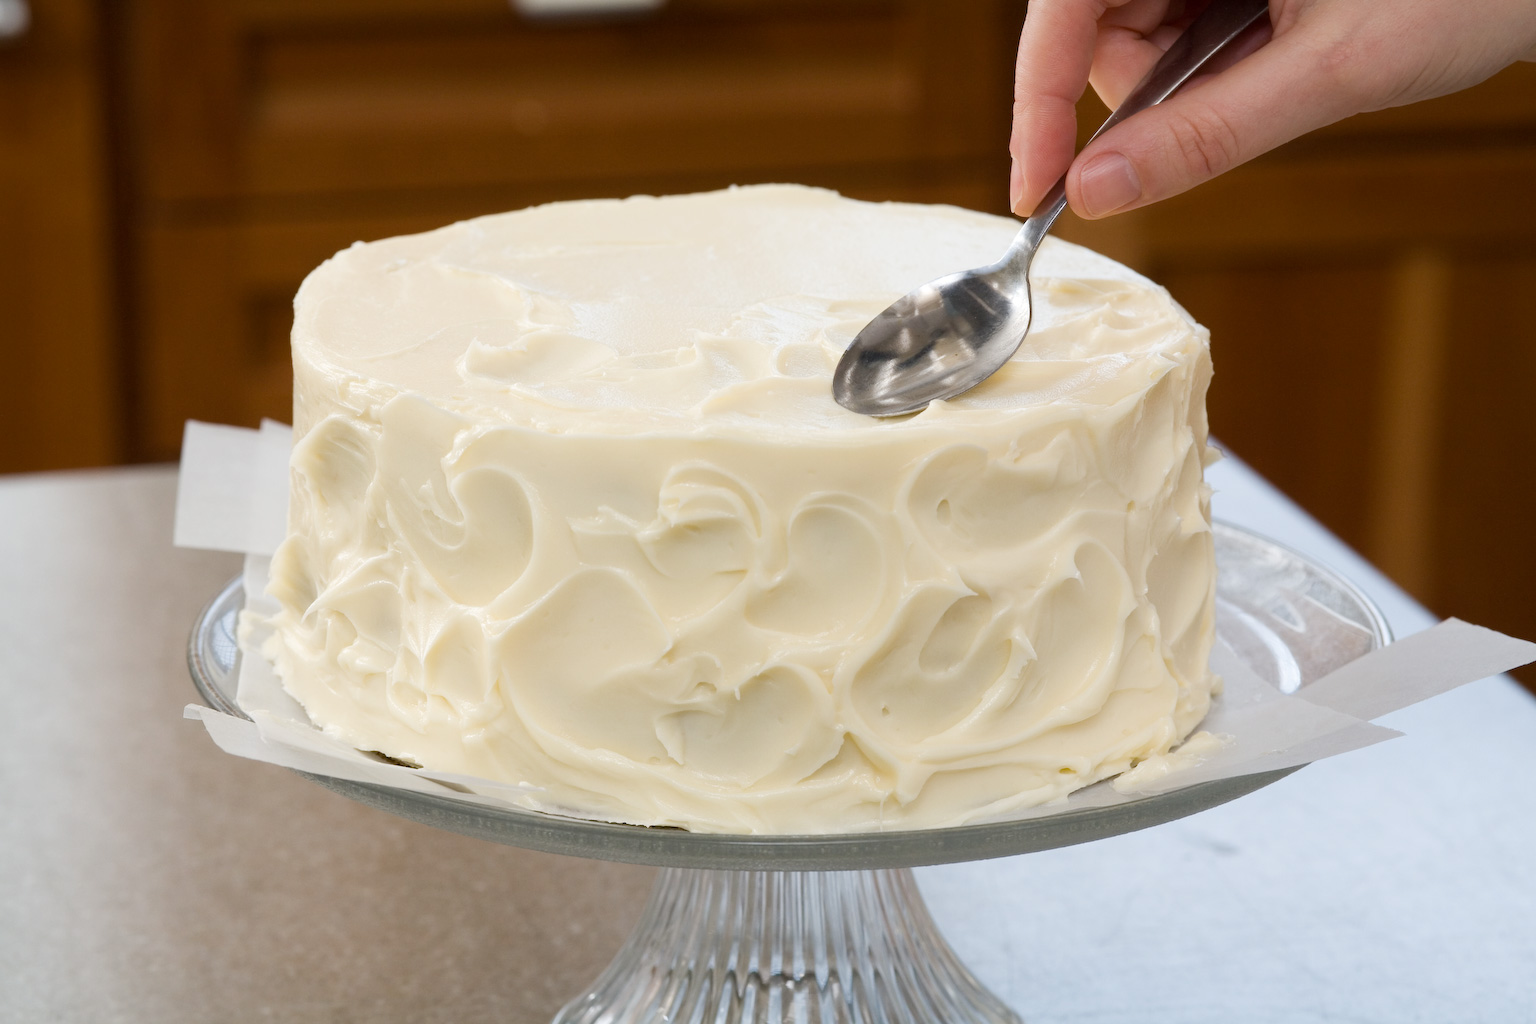 Cake Designs Easy To Make : Easy Bake Games: Secrets to Decorating Layer Cakes